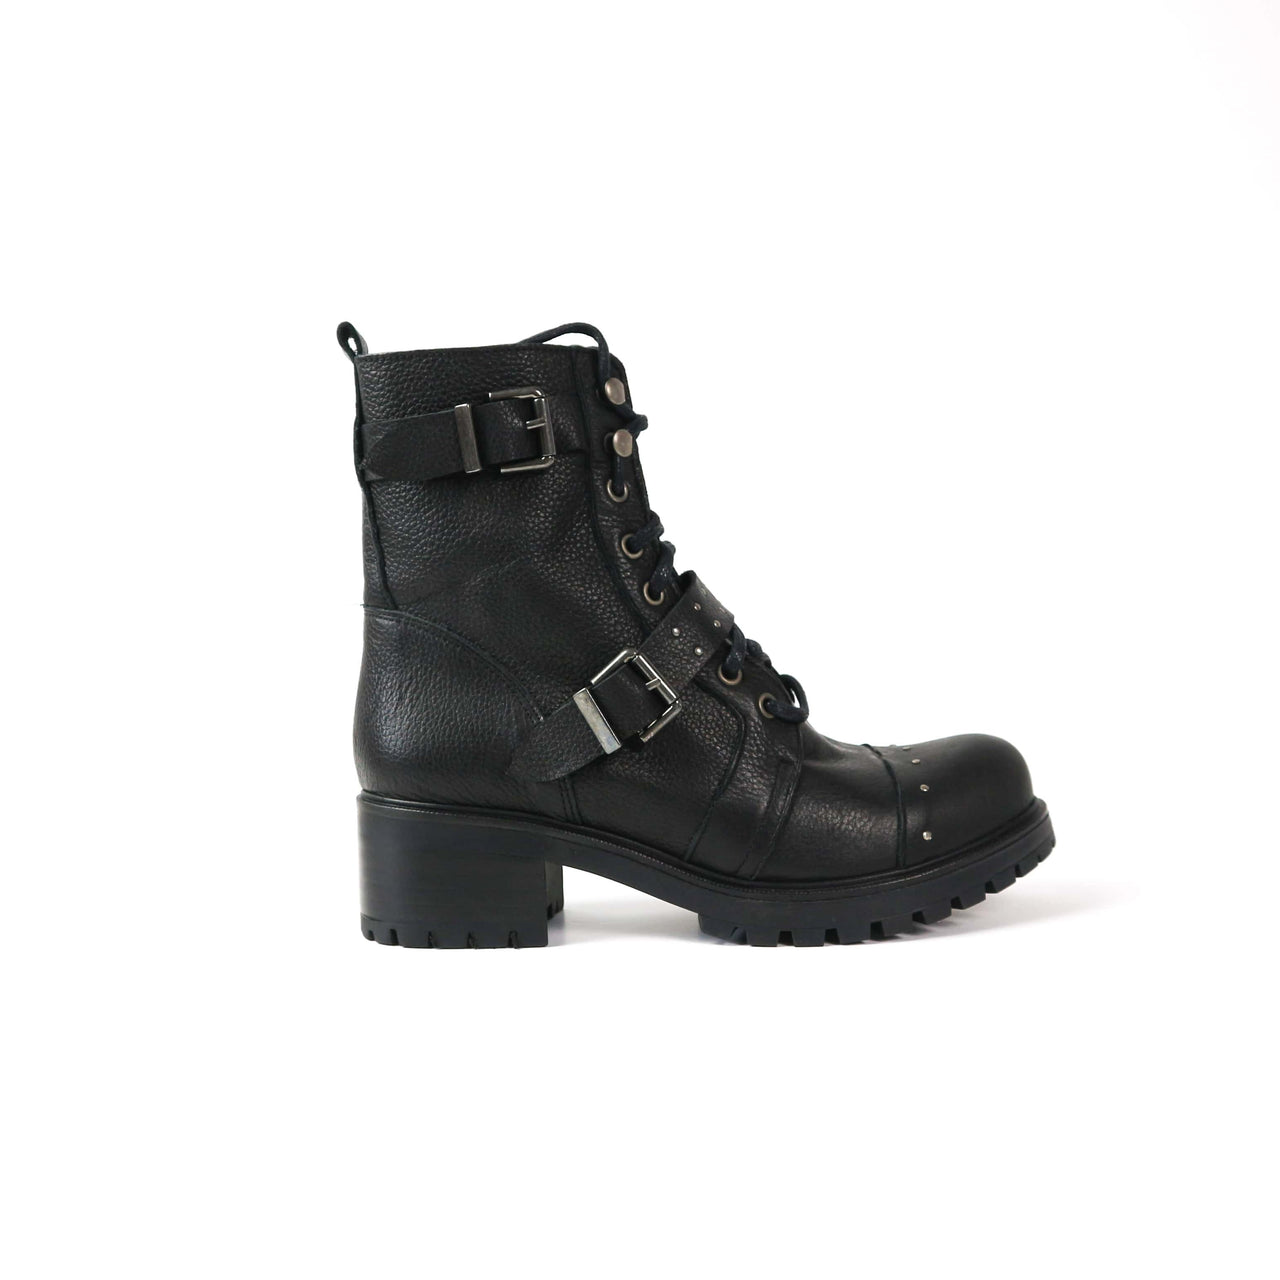 FRIDA | Black Studded Boot - TrystShoes